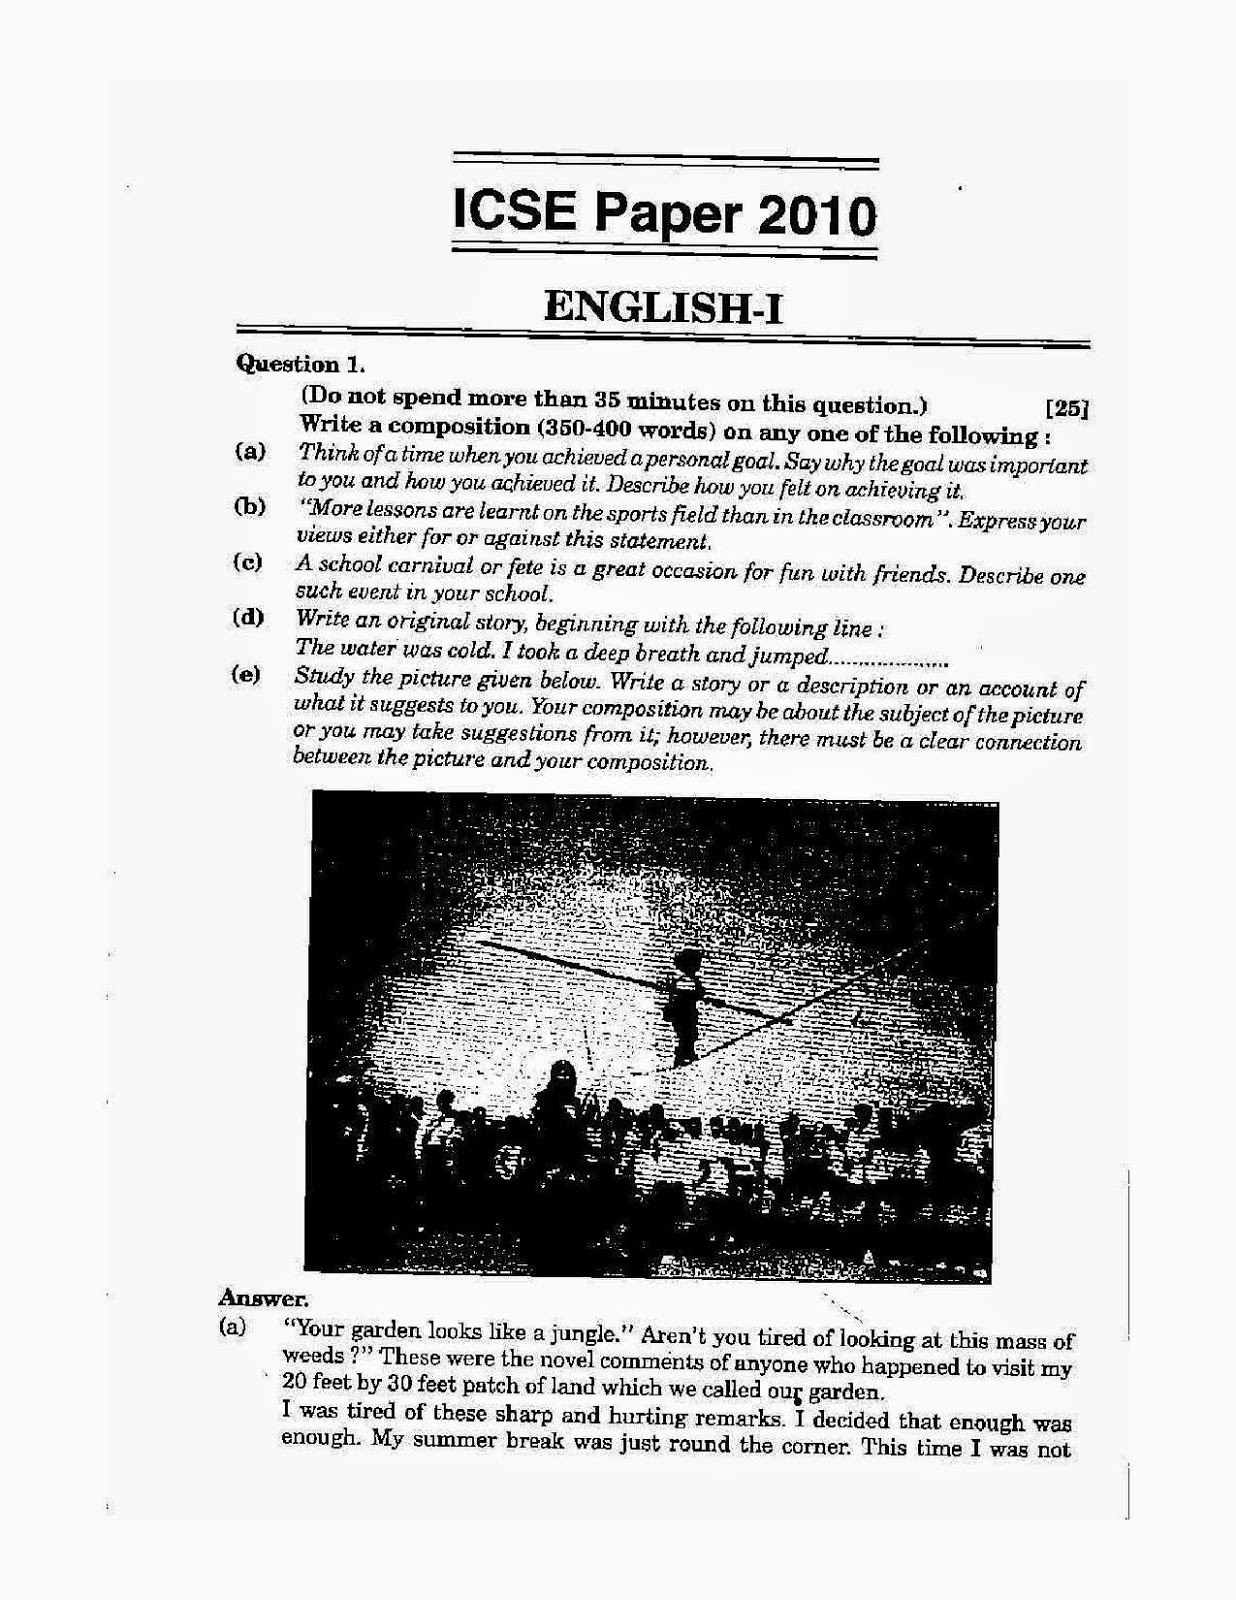 English Grammar Solved Question Papers For Class 10 Icse